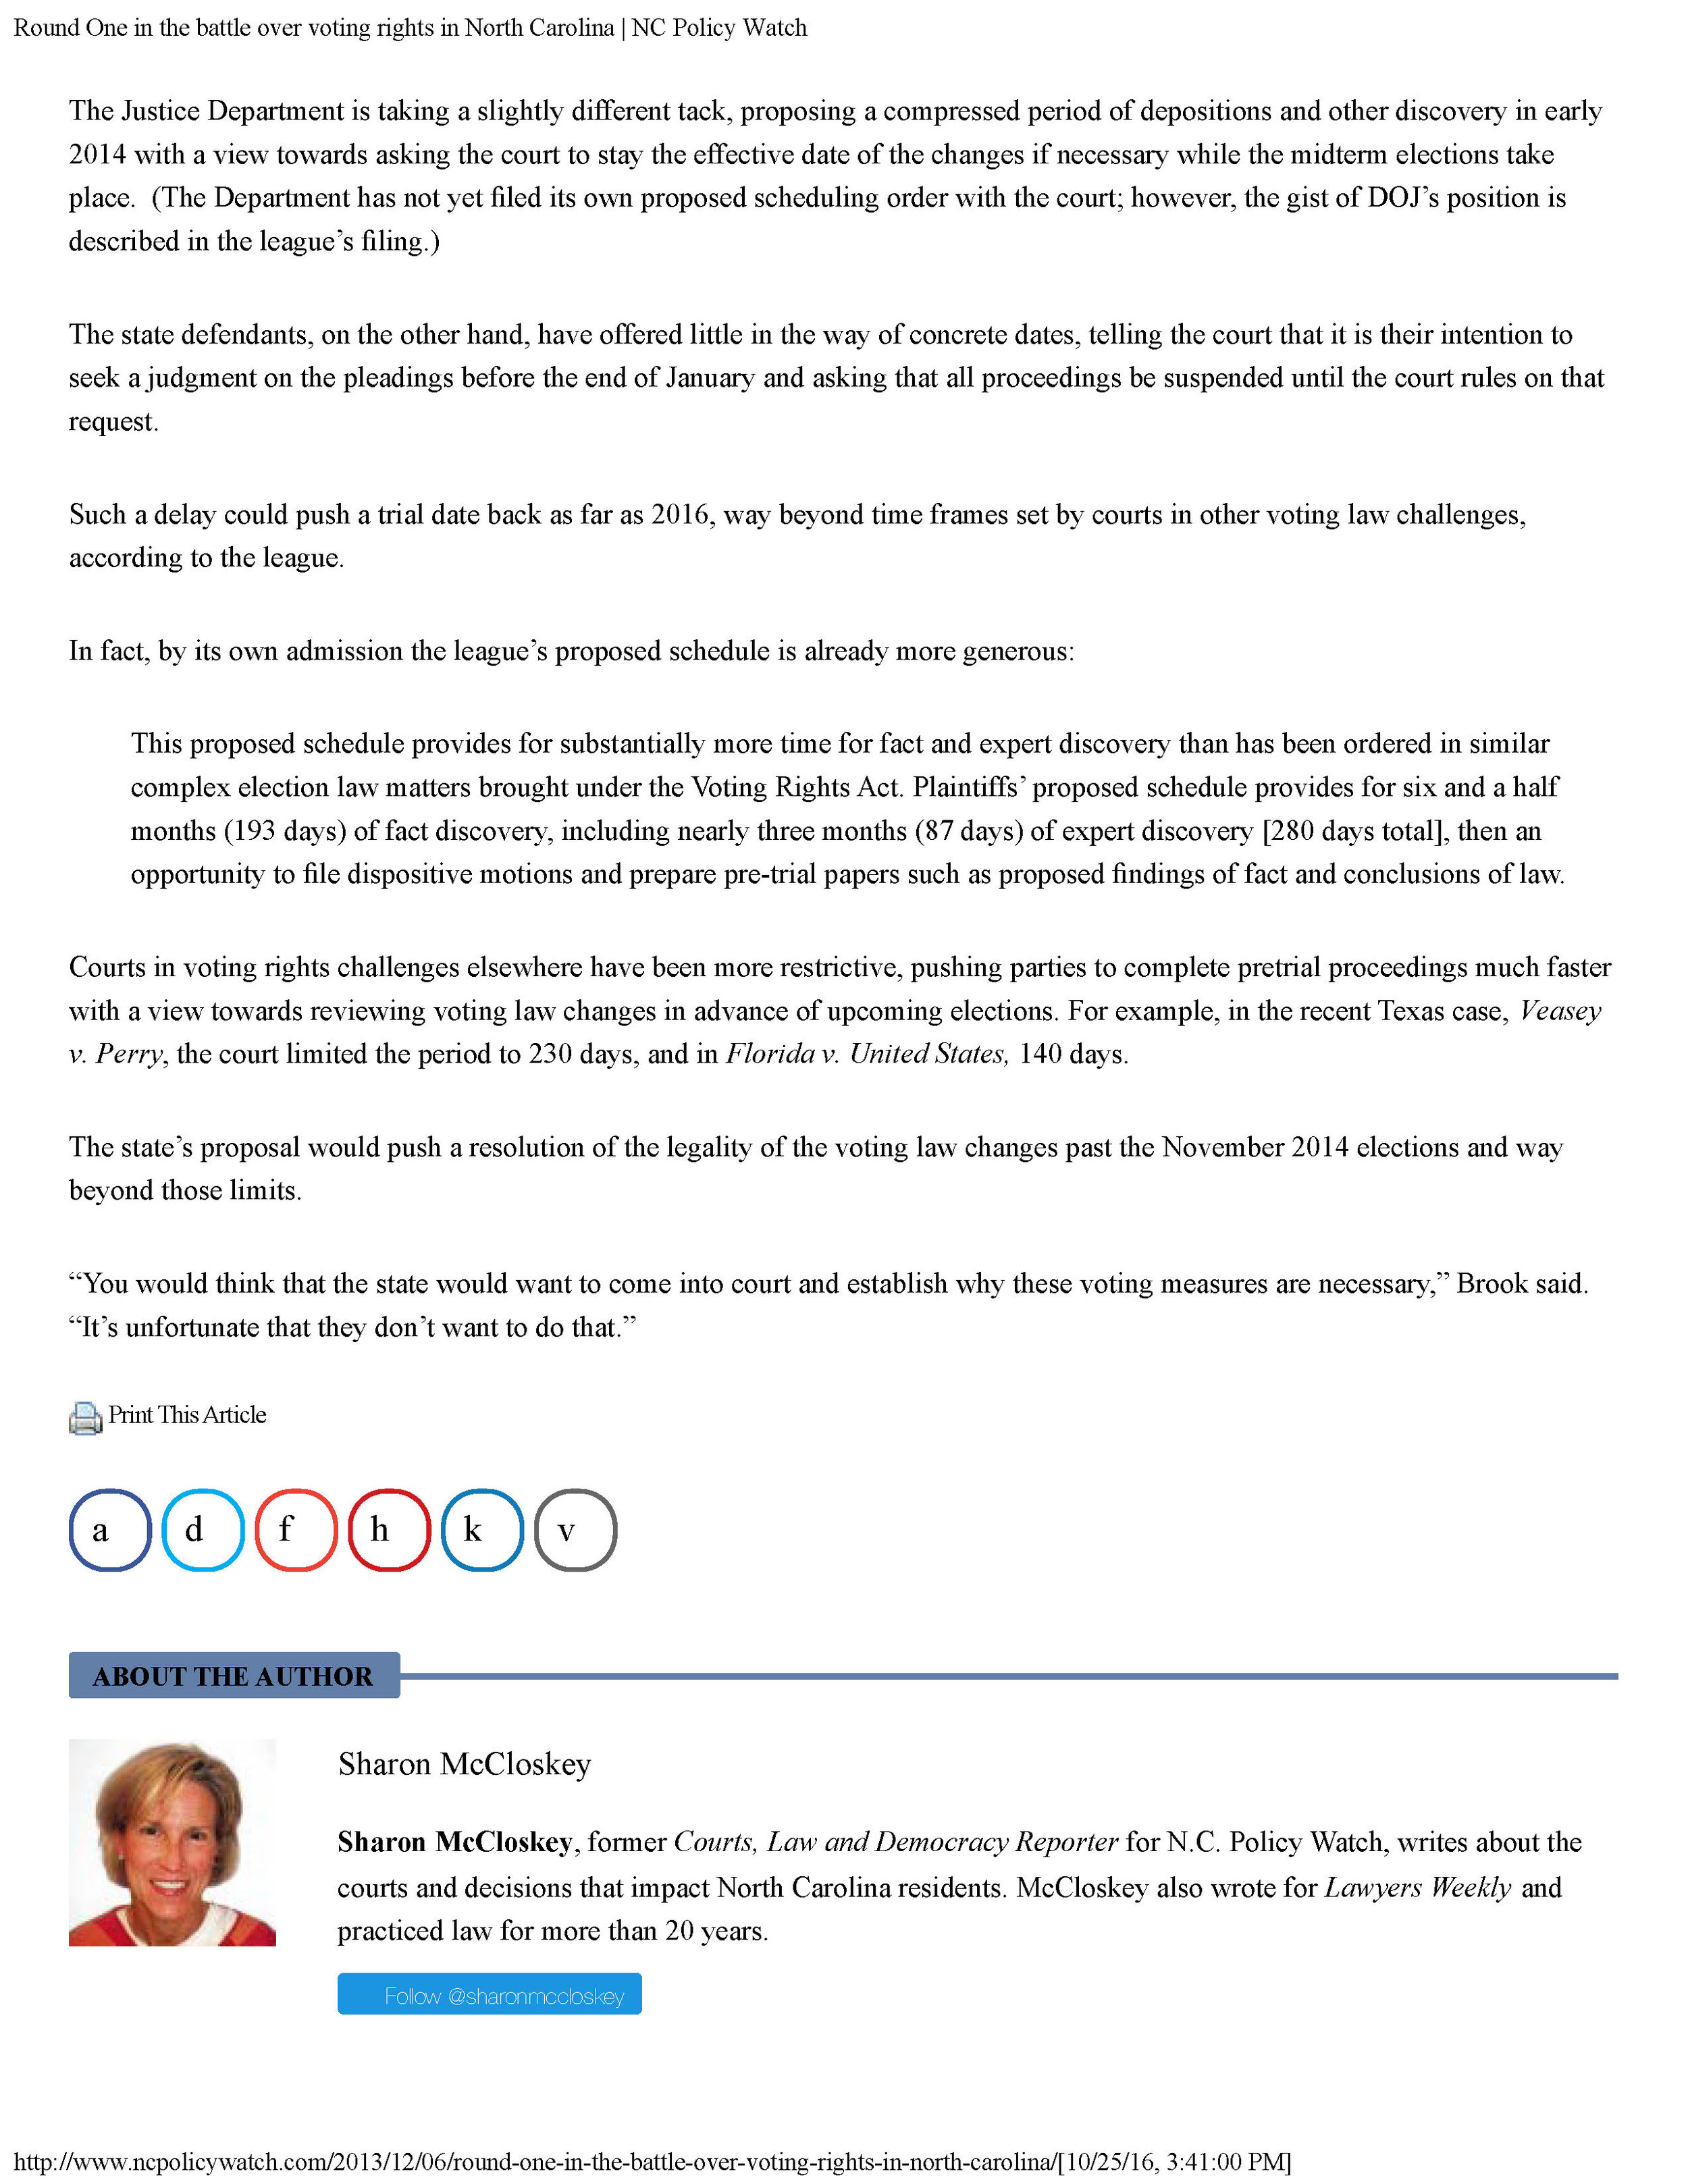 Sharon McCloskey - Round One in the battle over voting rights in North Carolina - NC Policy Watch_Page_3.jpg